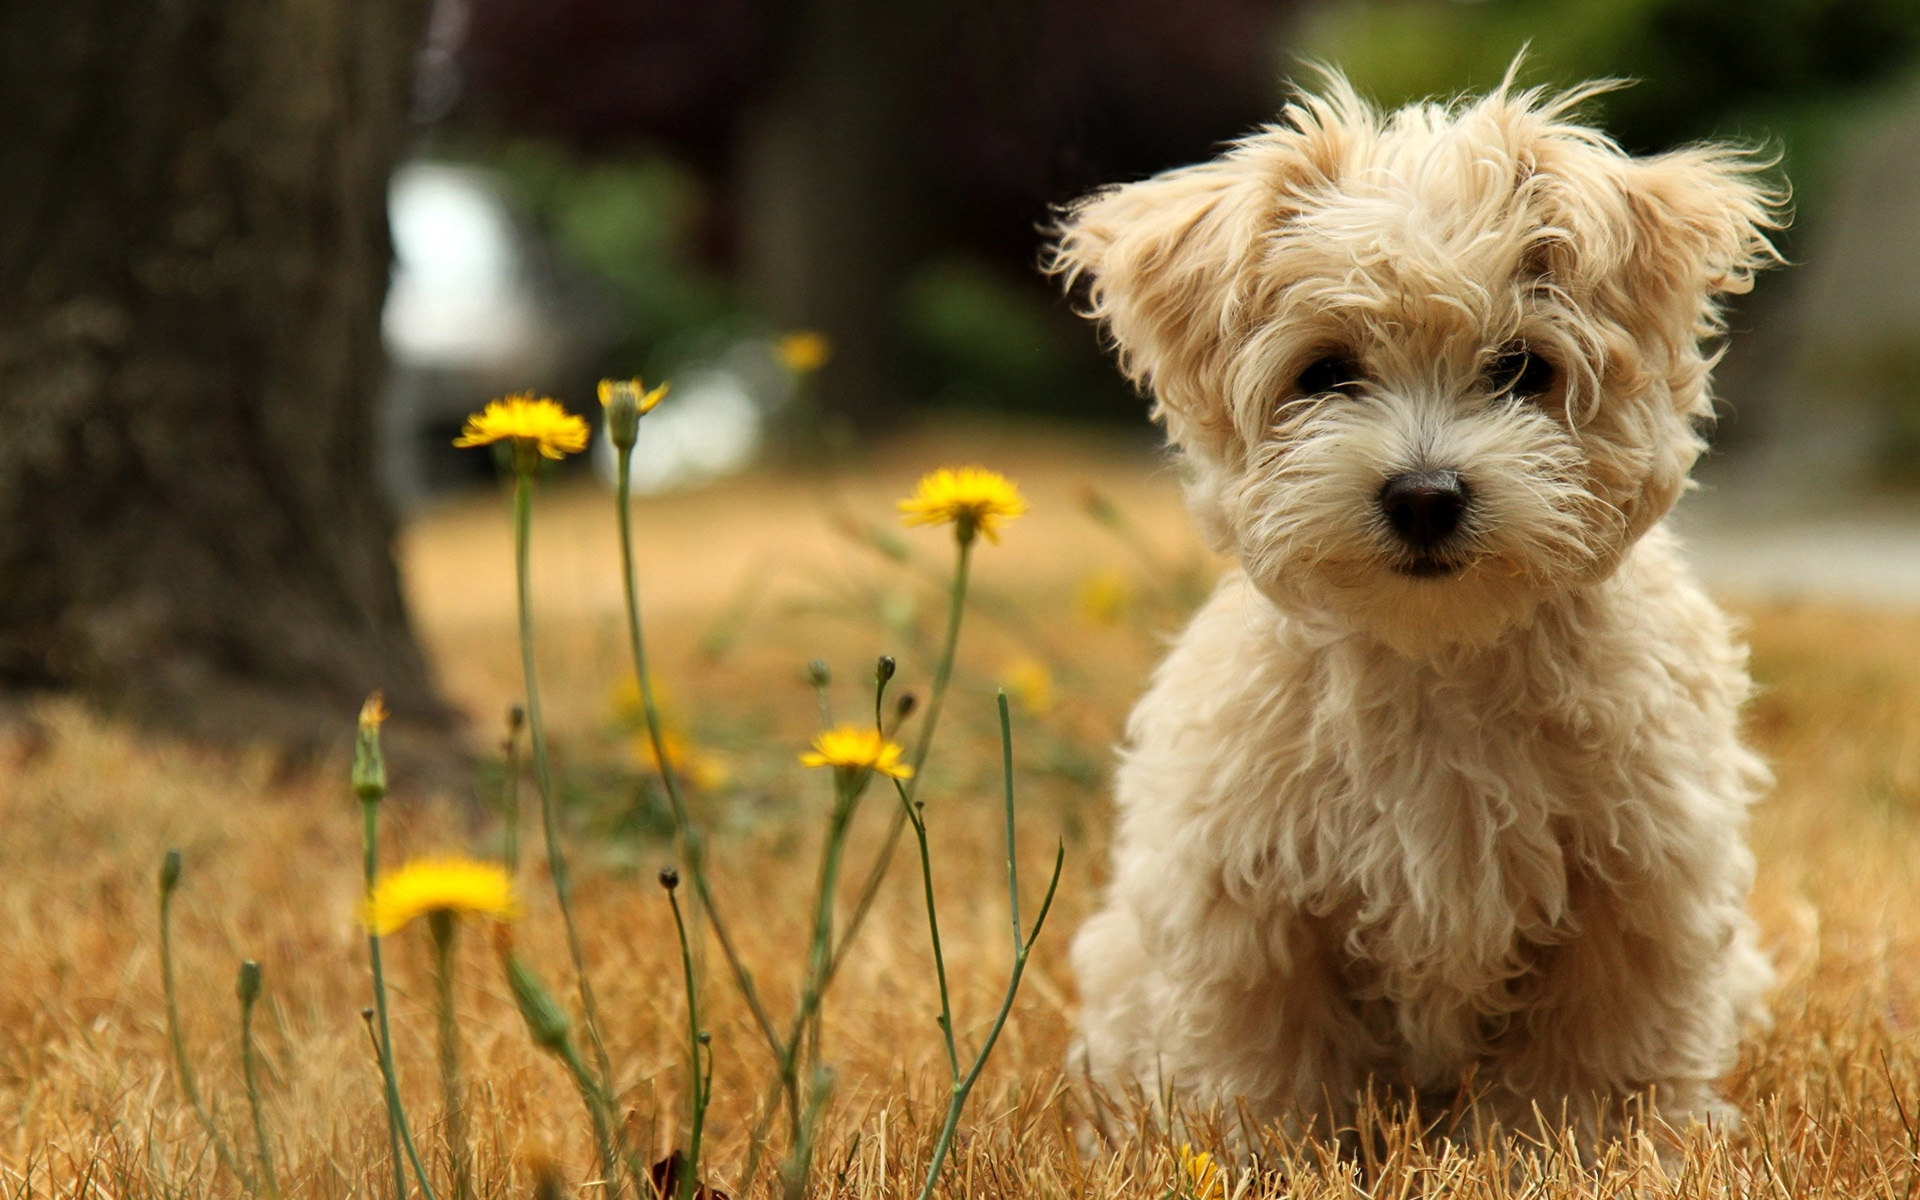 Cute Animals Wallpapers Download HD Wallpapers 1920x1200